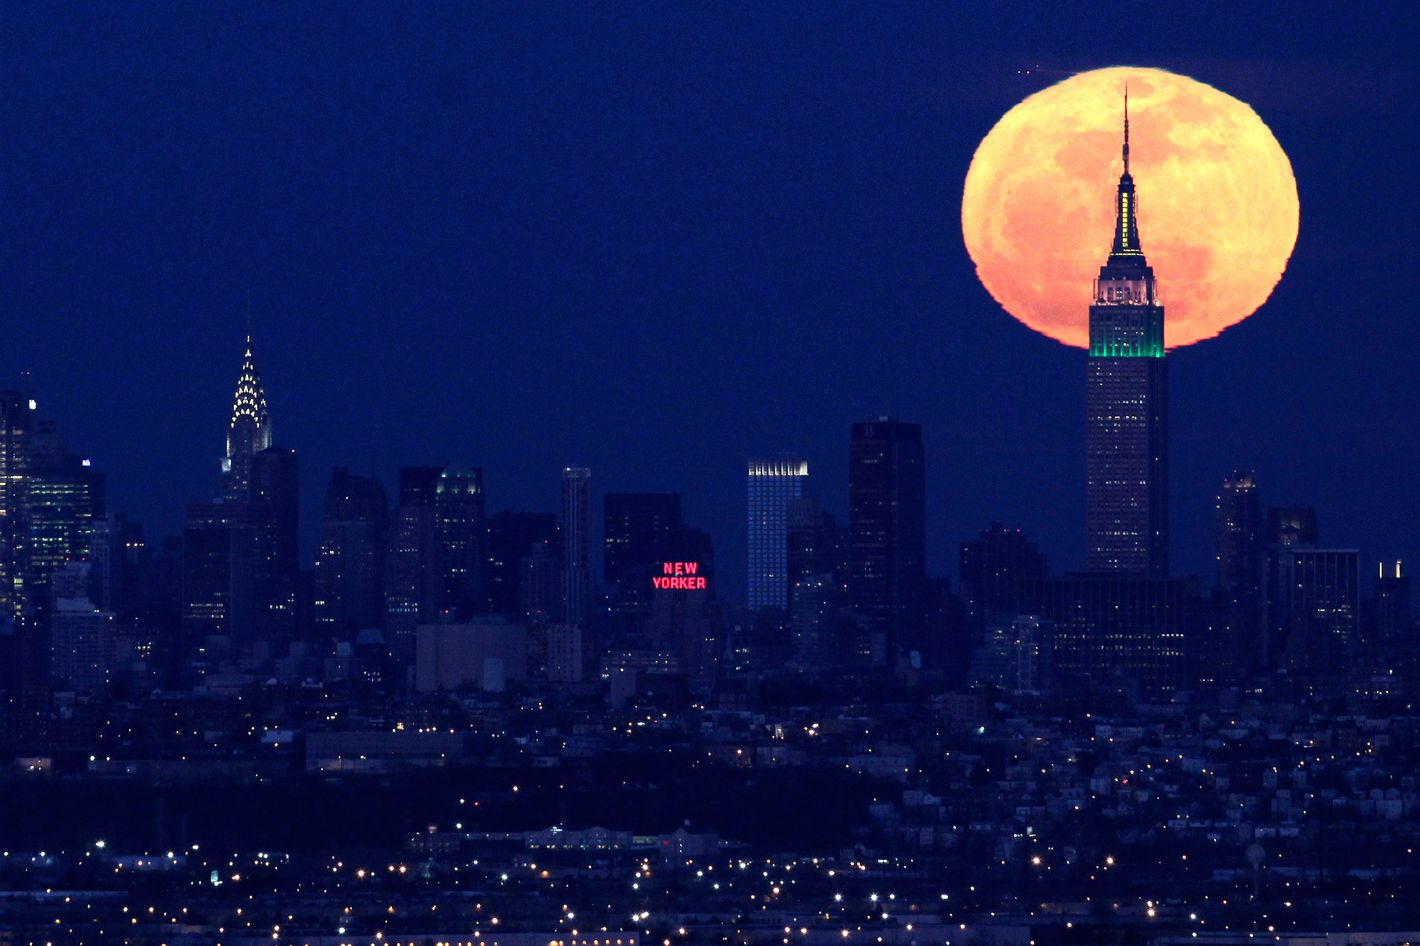 """A full moon rises behind the Empire State Building in New York in this view from Eagle Rock Reservation in West Orange, N.J., in this April 6, 2012 file photo. The biggest and brightest full moon of the year arrives Saturday night May 5, 2012 as our celestial neighbor passes closer to Earth than usual. Saturday's event is a """"supermoon,"""" the closest and therefore the biggest and brightest full moon of the year. At 11:34 p.m., the moon will be about 221,802 miles from Earth. That's about 15,300 miles closer than average. (AP Photo/Julio Cortez, File)"""